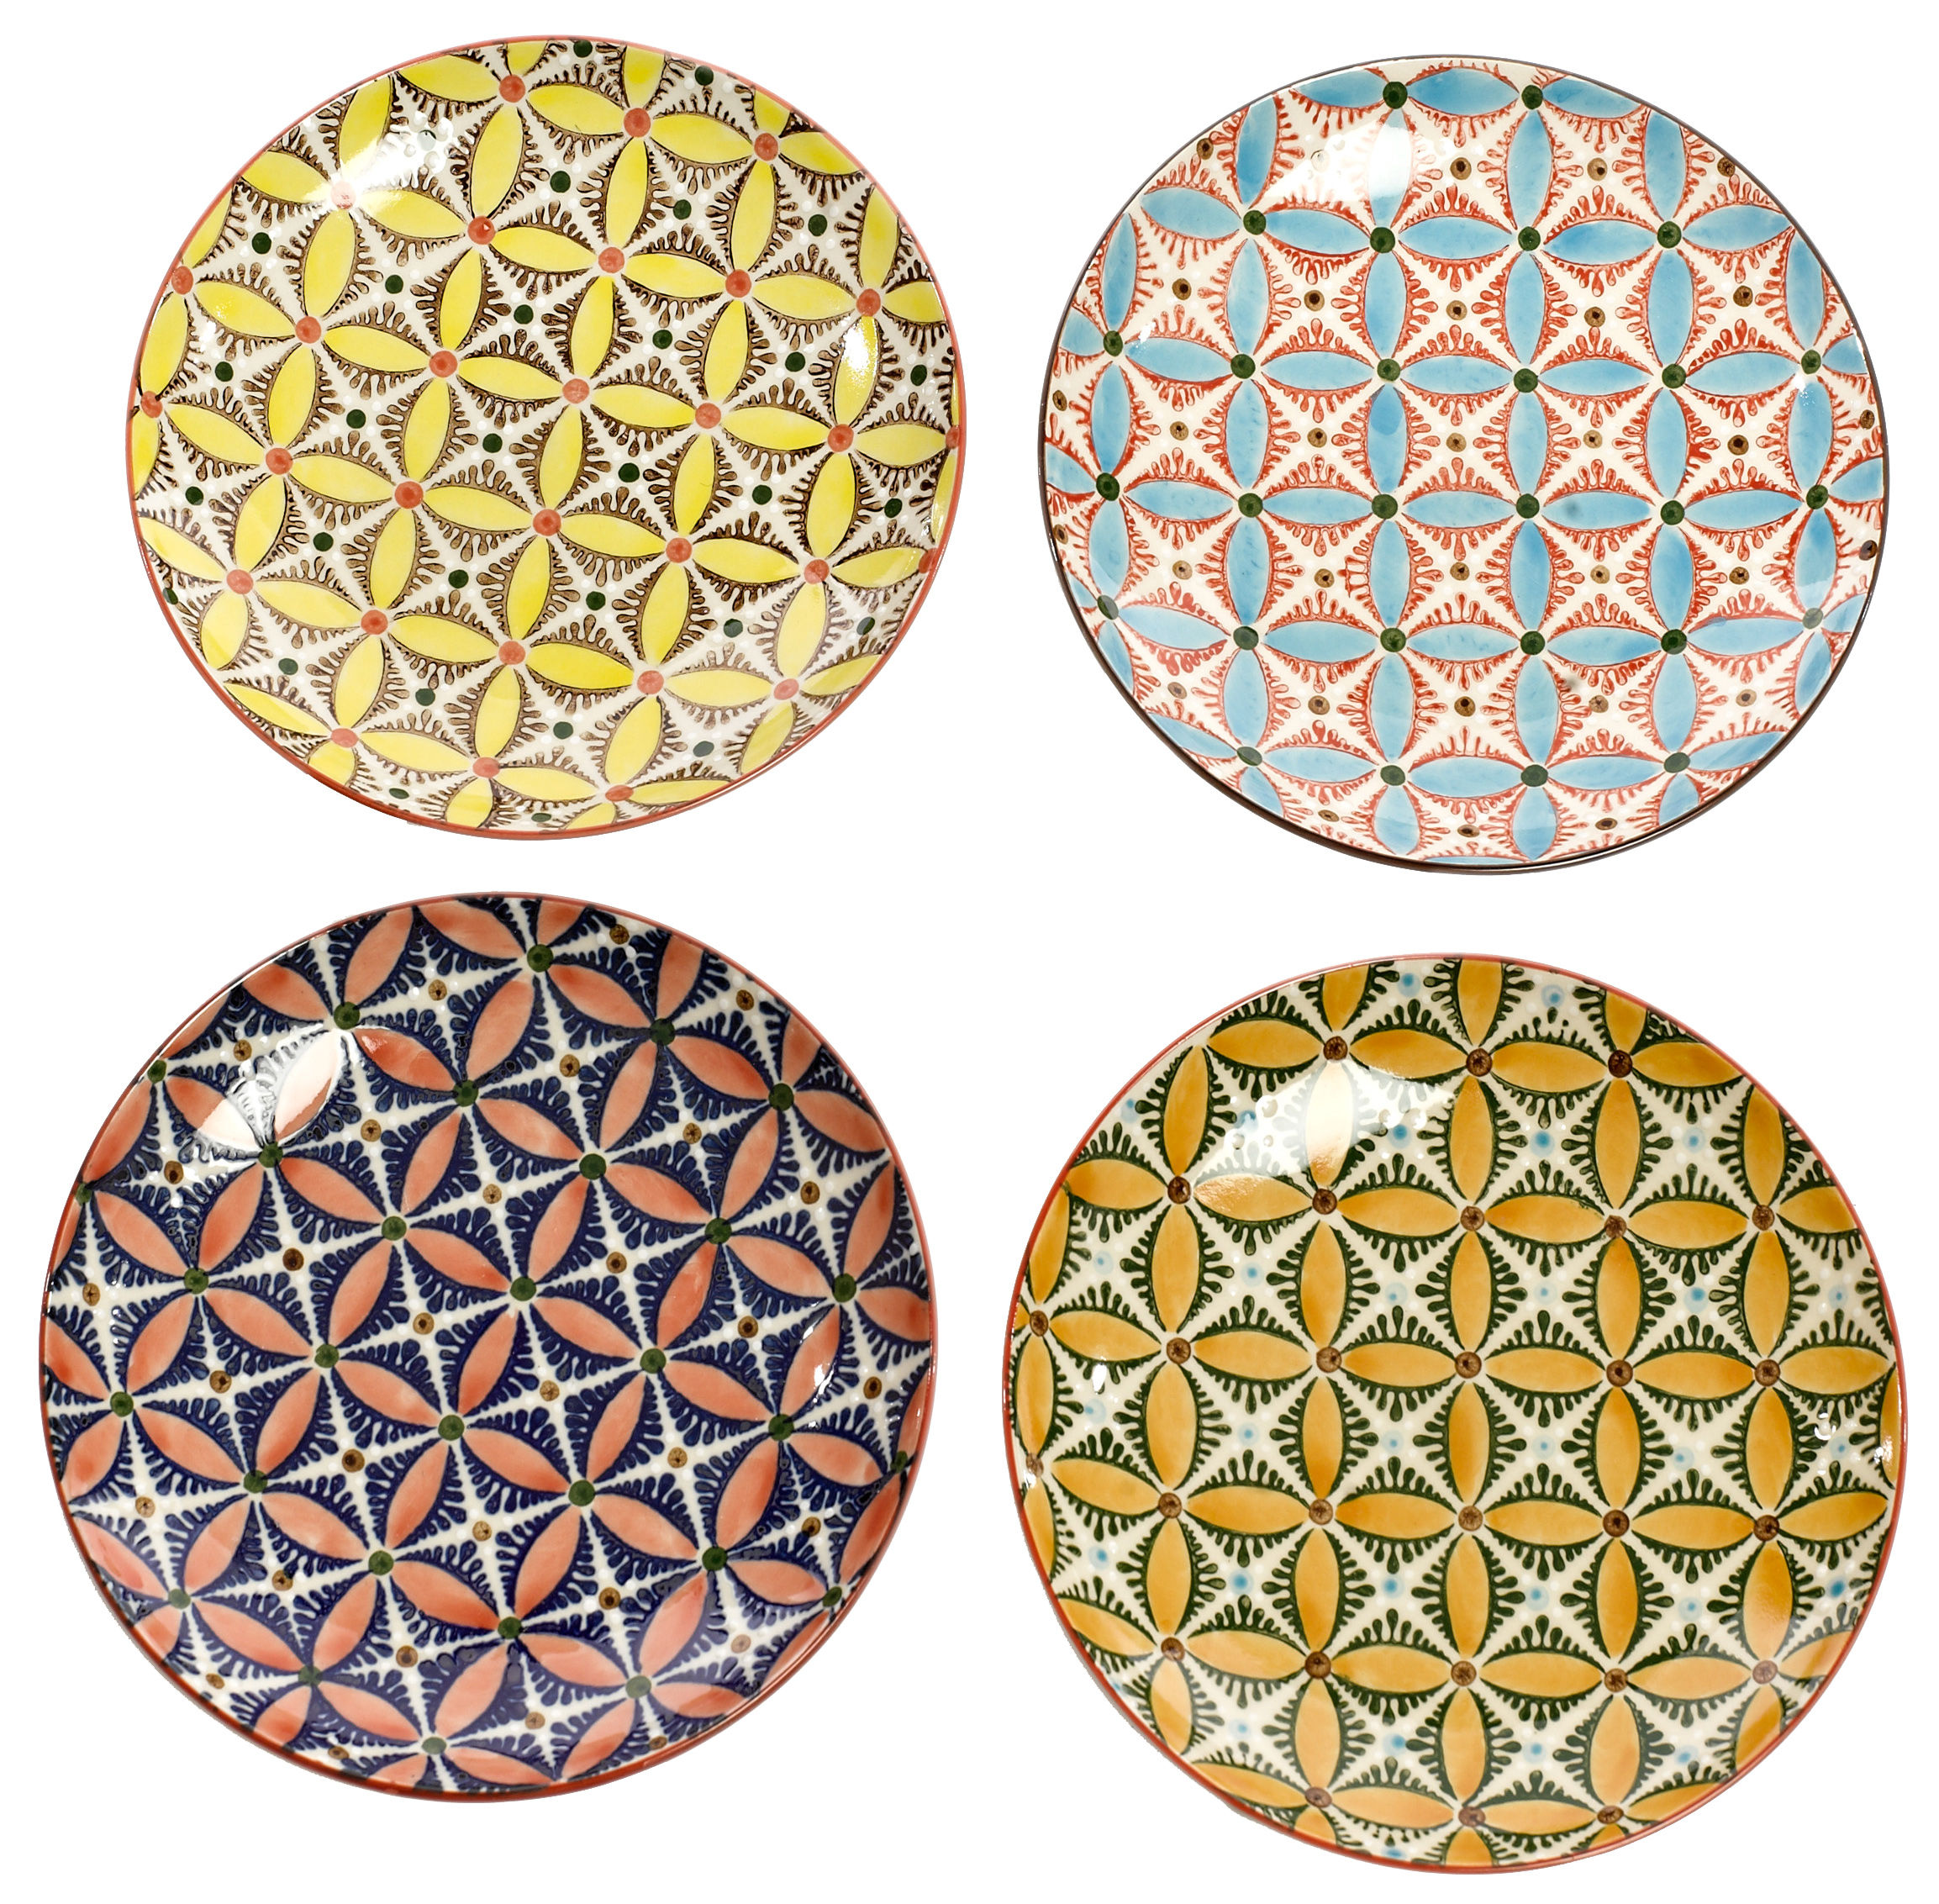 Arts de la table - Assiettes - Assiette à dessert Hippy / Ø 20 cm - Set de 4 - Pols Potten - Multicolore - Céramique vitrifiée